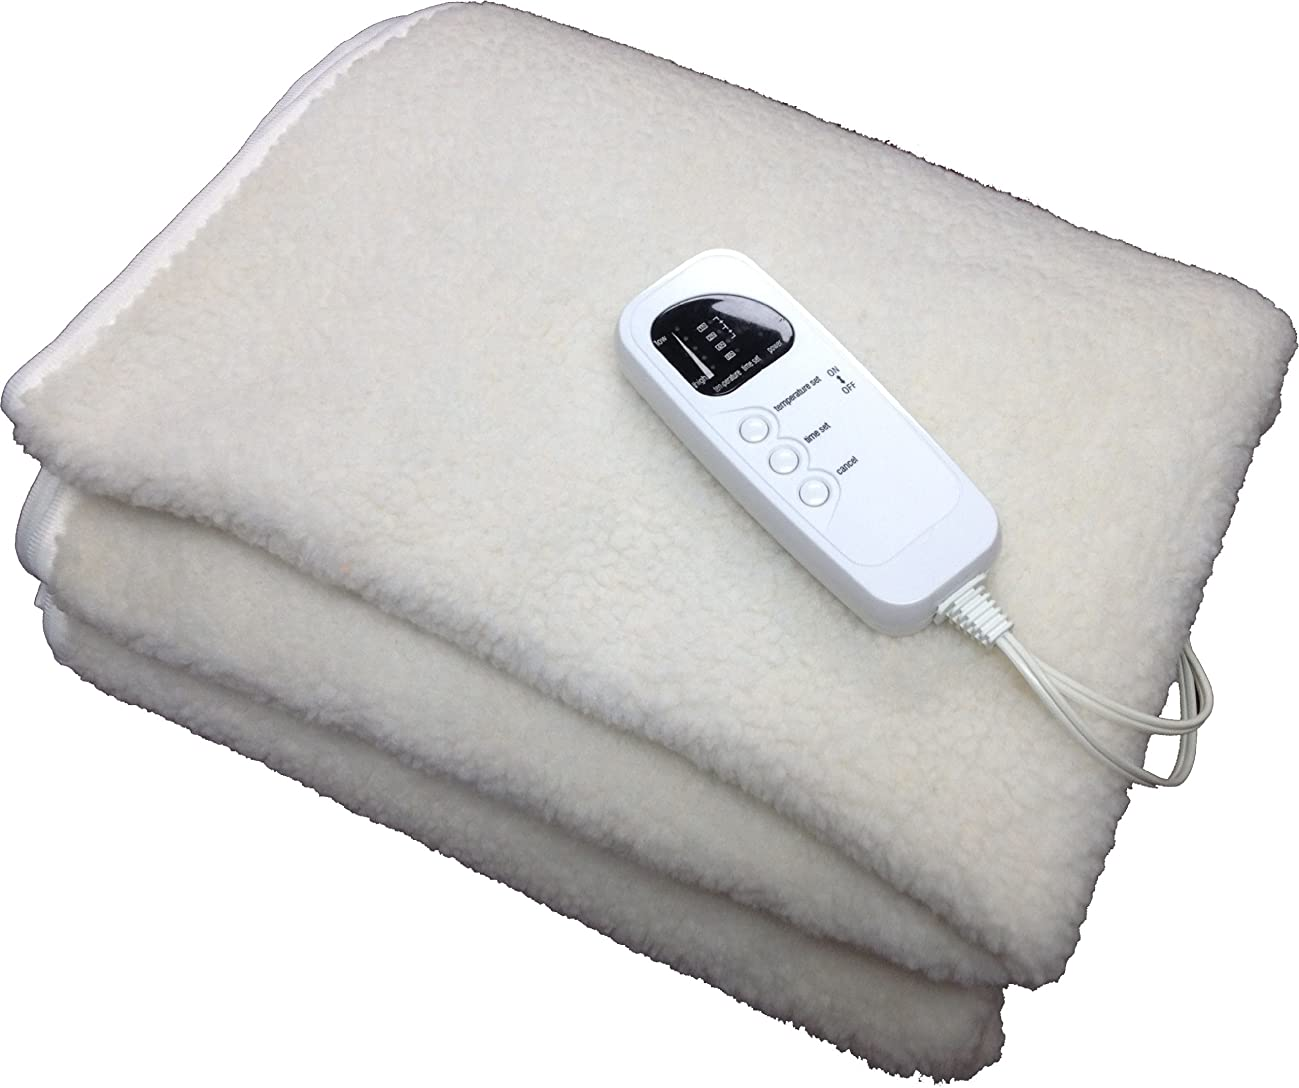 Therapist's Choice? Deluxe Fleece Massage Table Warmer, 12 Foot Power Cord. For Use with Massage Tables Only, Do Not Use as a Bed Blanket Warmer